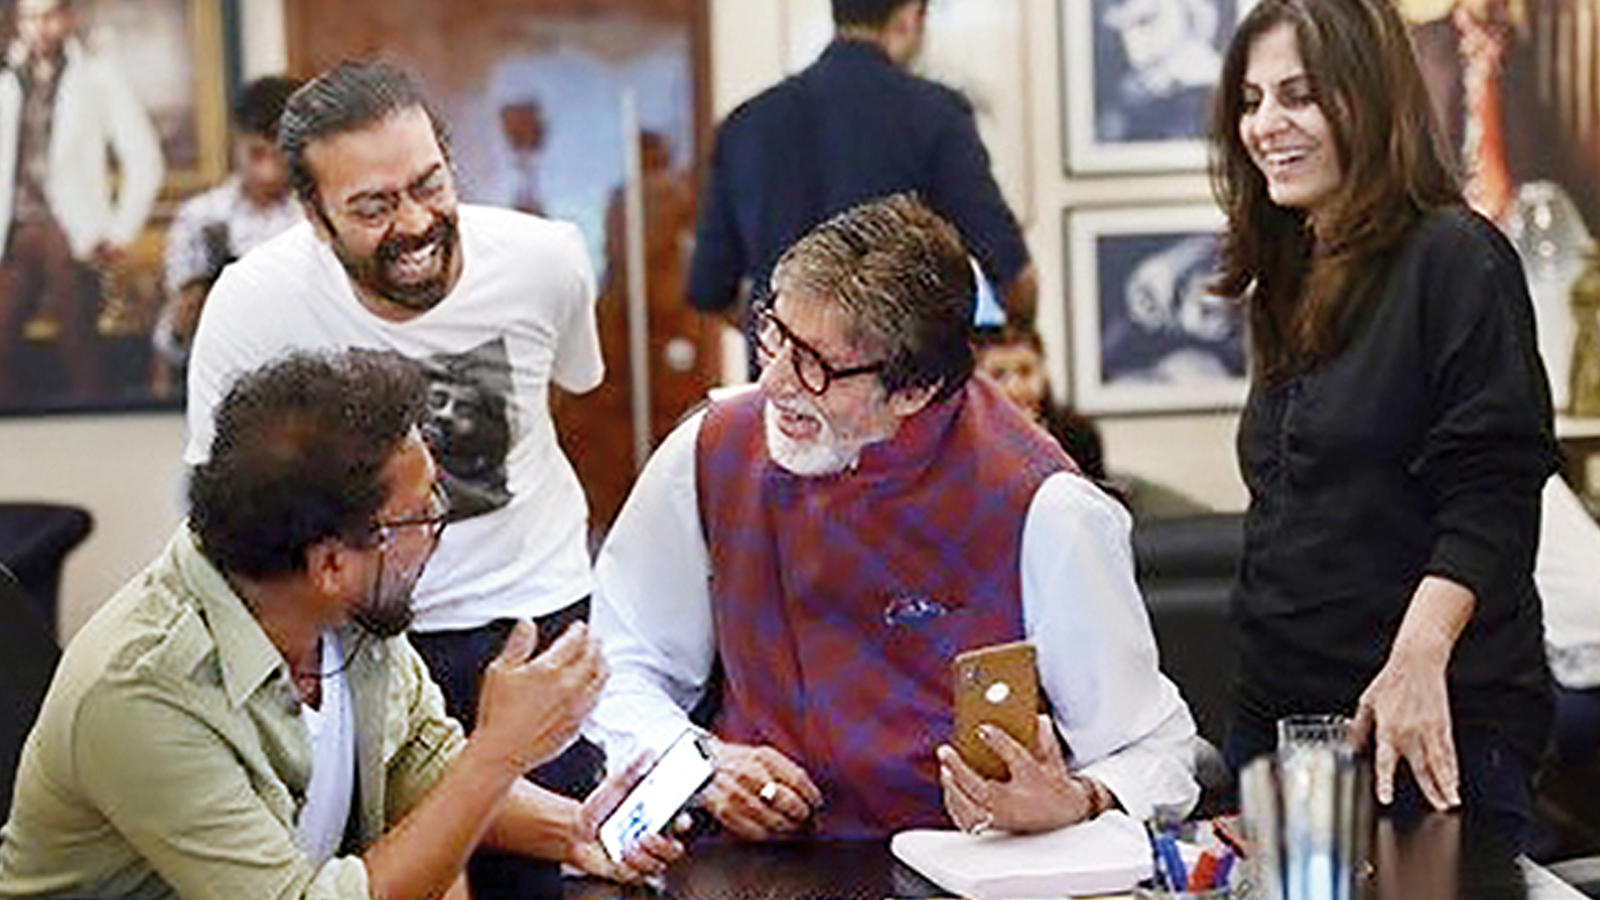 Amitabh Bachchan headed to Lucknow to shoot for Shoojit Sircar's film